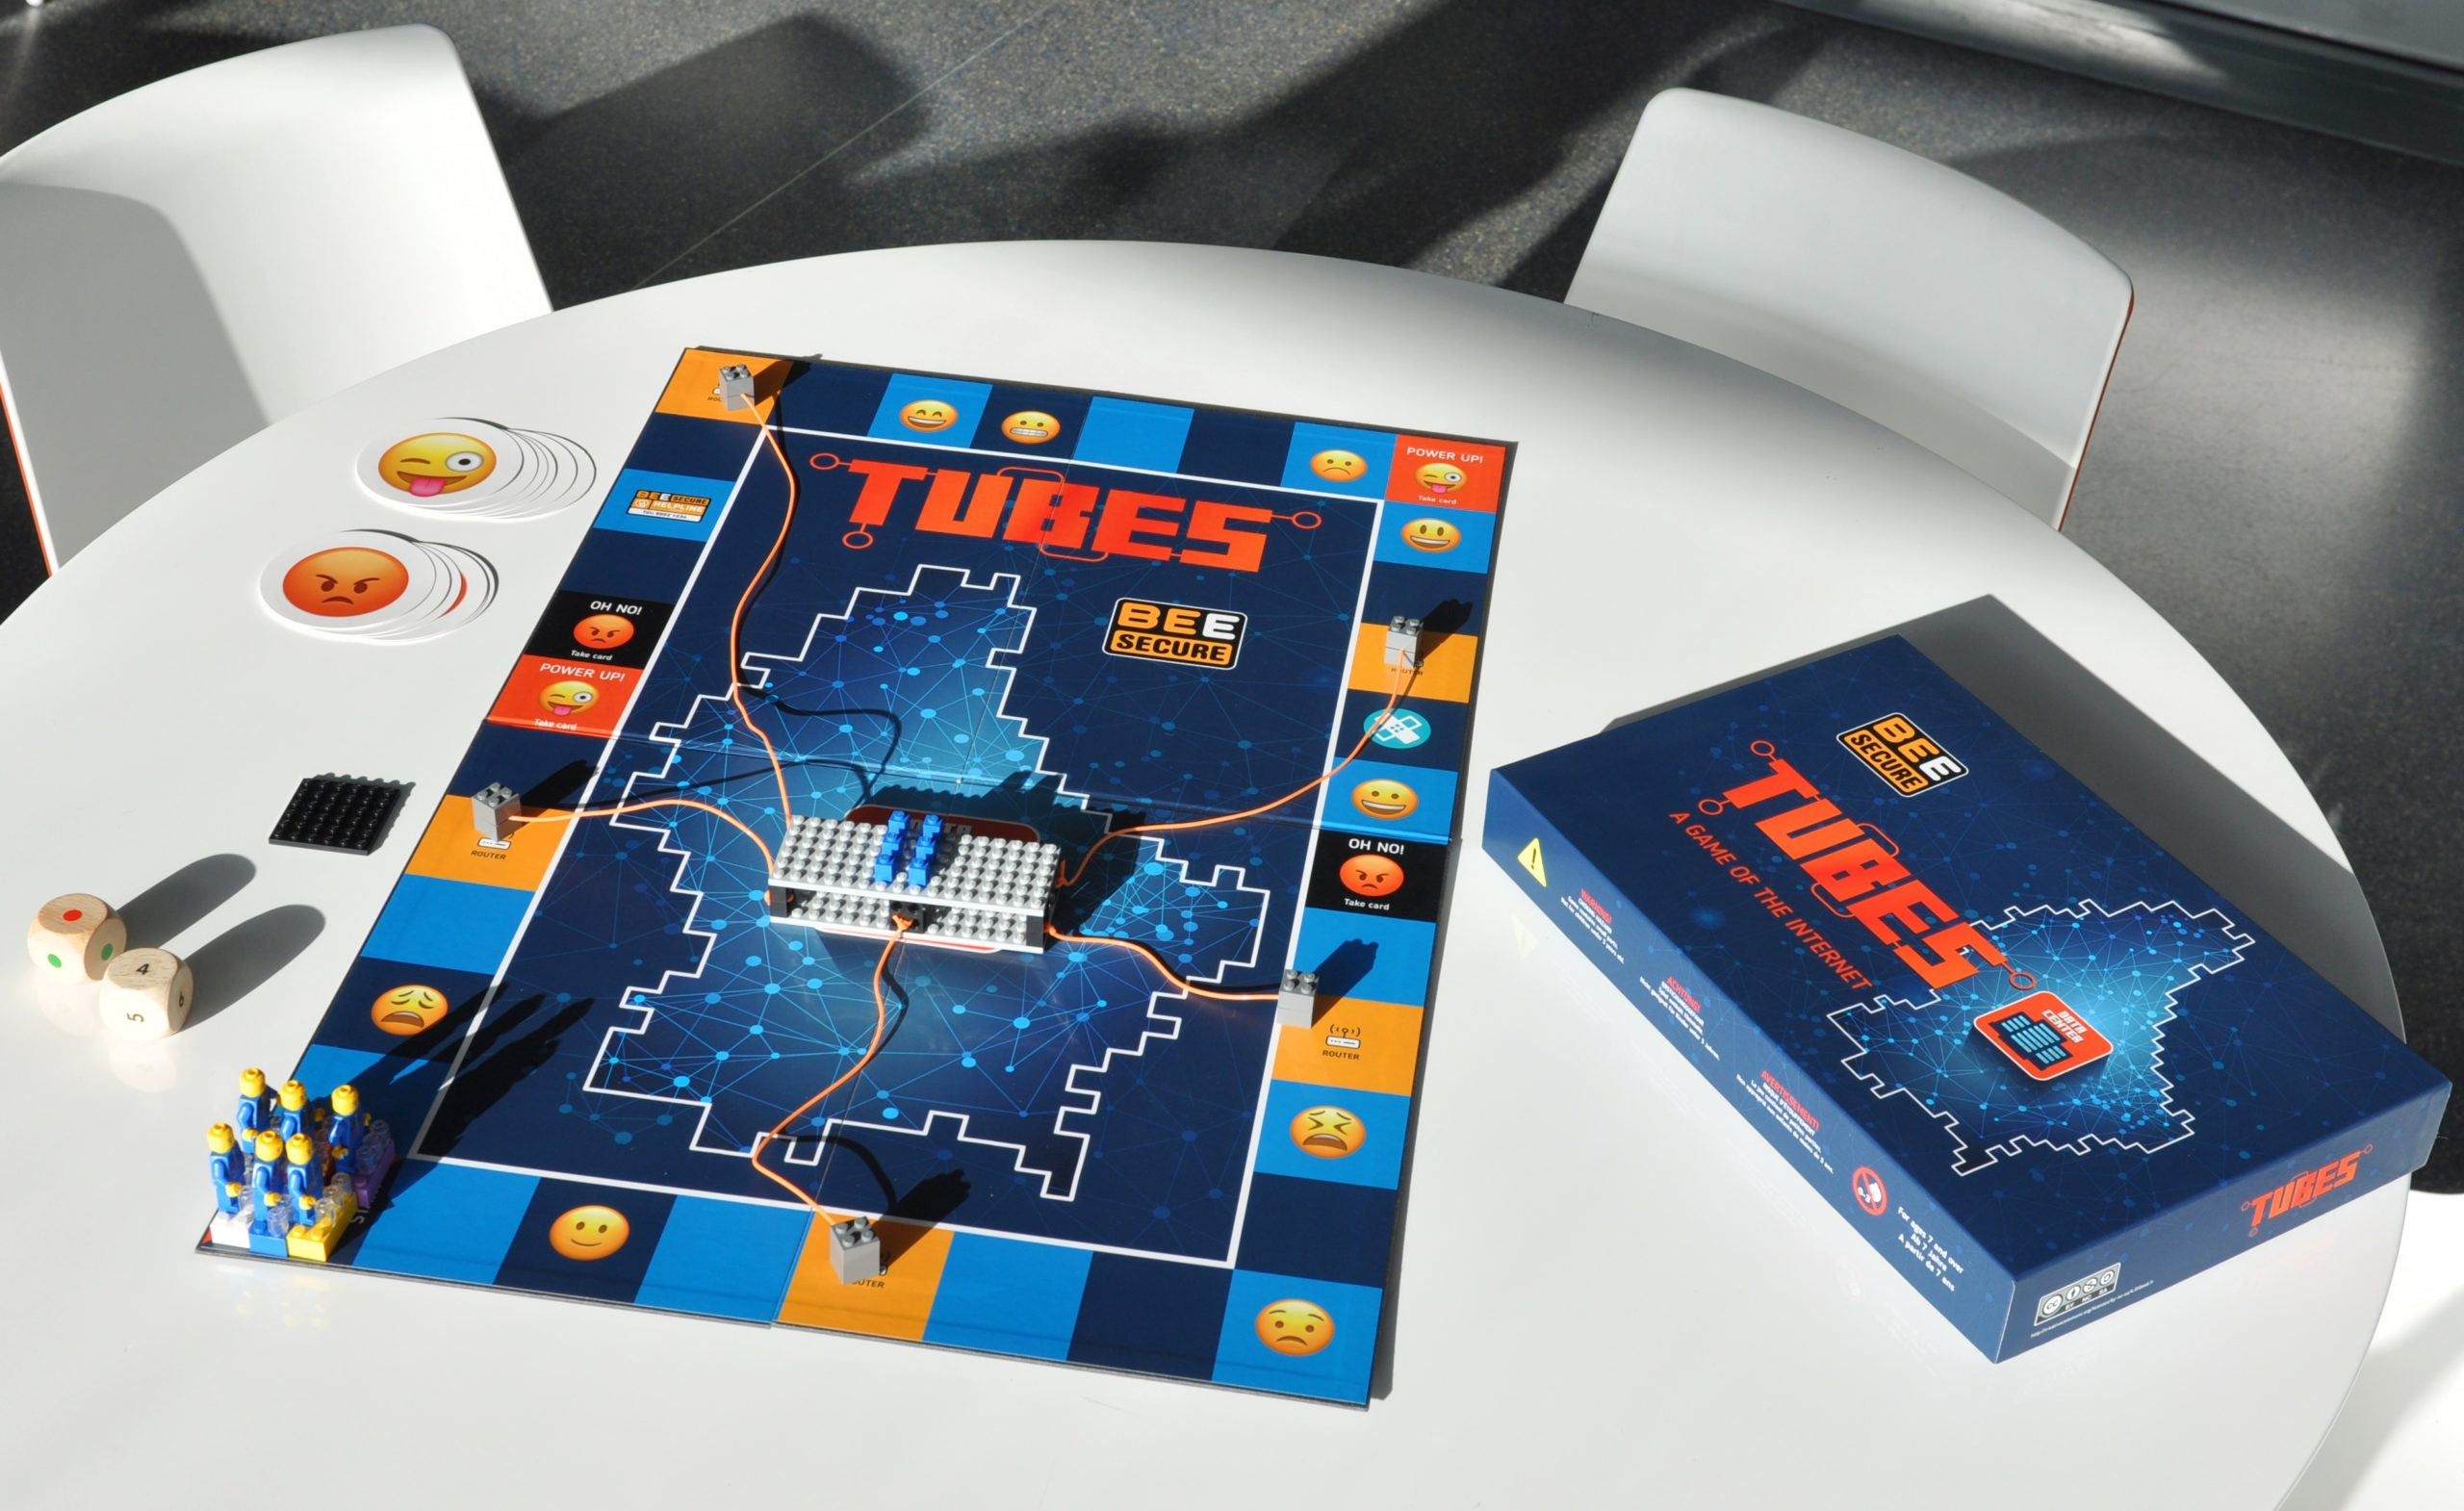 Cybersecurity Week Special: Security Games Kids Edition 19/10/19